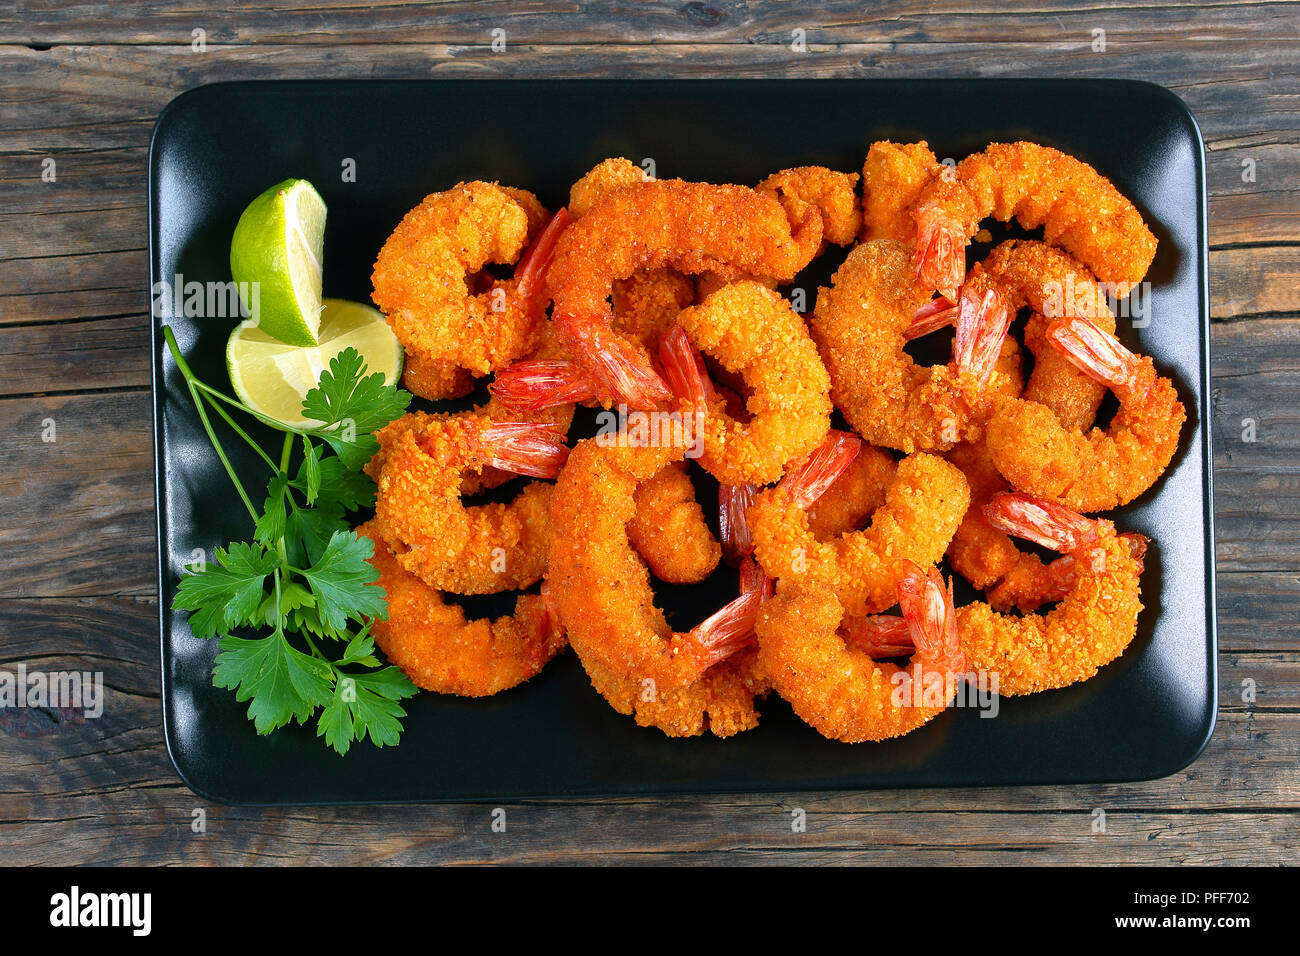 delicious deep fried breaded shrimps on black plate with lime wedges and coriander leaves, horizontal view from above, close-up - Stock Image